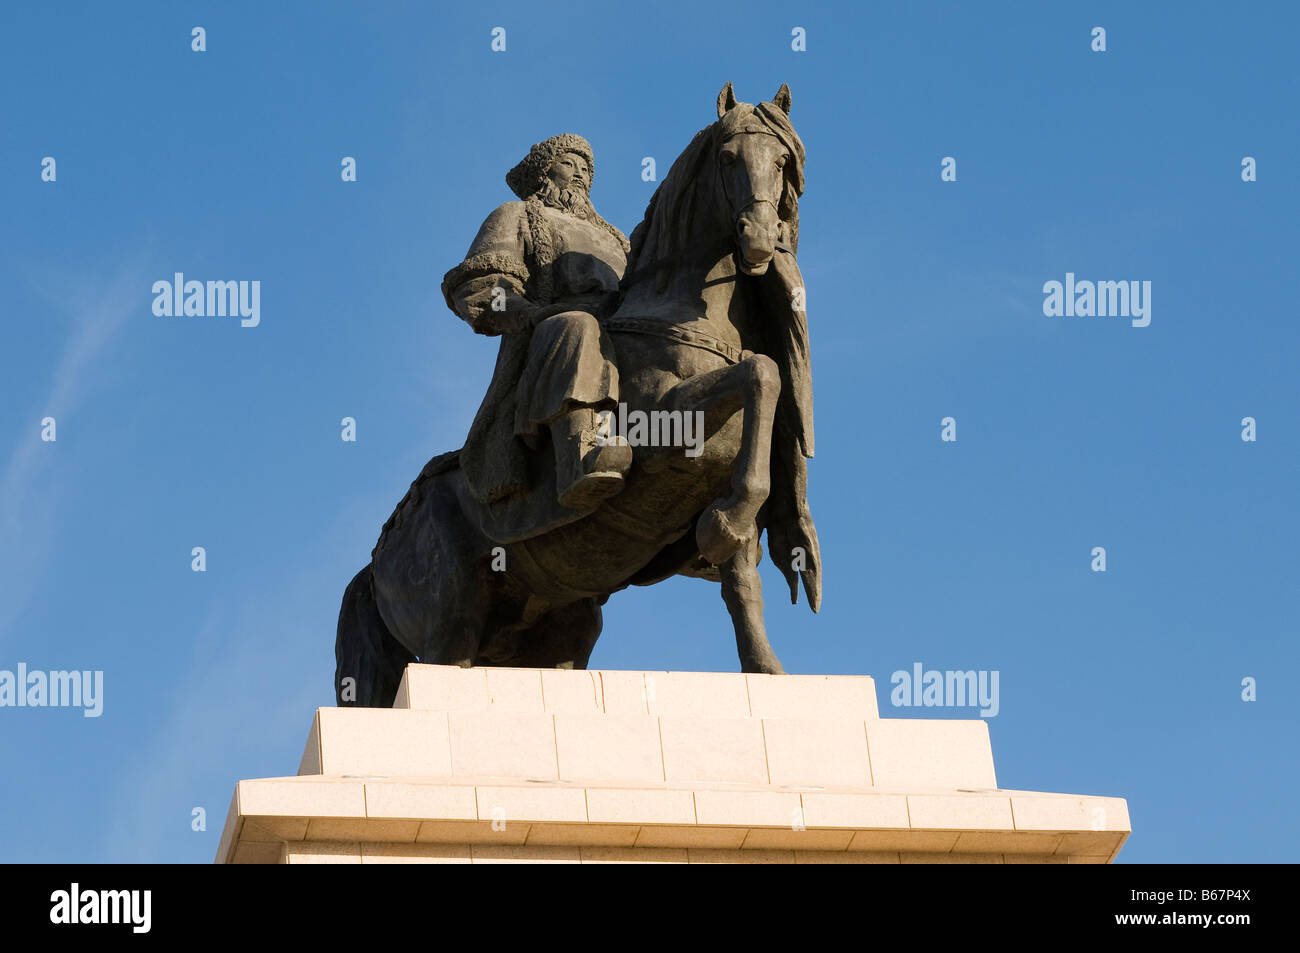 Statue of Genghis Khan at city performing art center Xiwuzhumuqinqi Inner Mongolia China - Stock Image